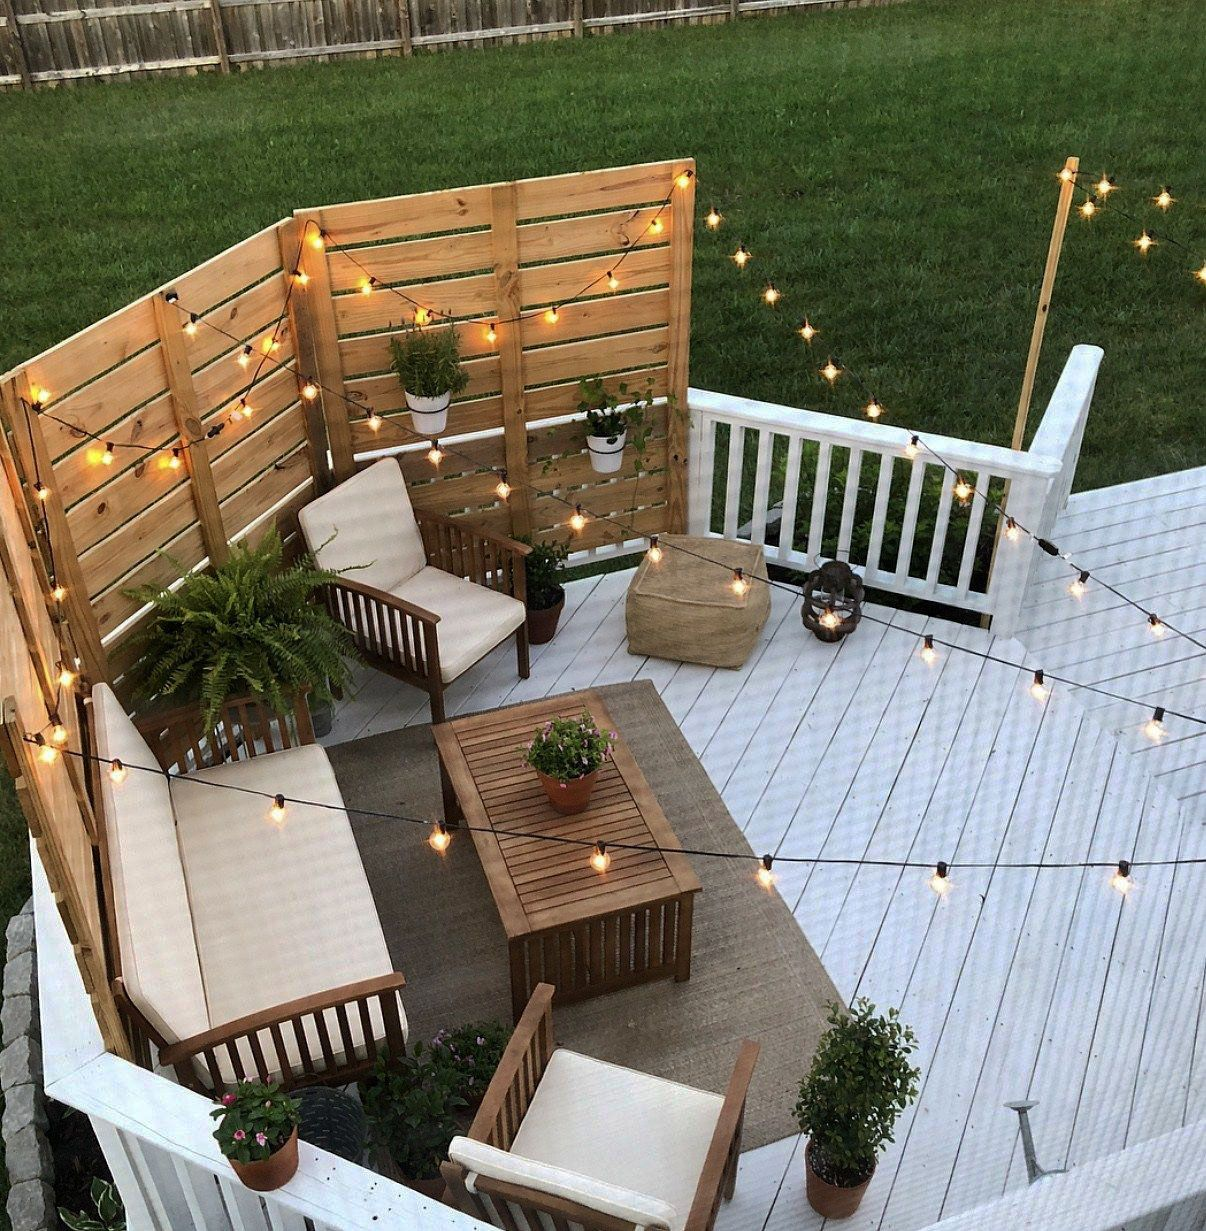 25 Chic Patio Ideas To Try In Your Backyard Meuble Terrasse Terrasse Arriere Decoration Exterieur